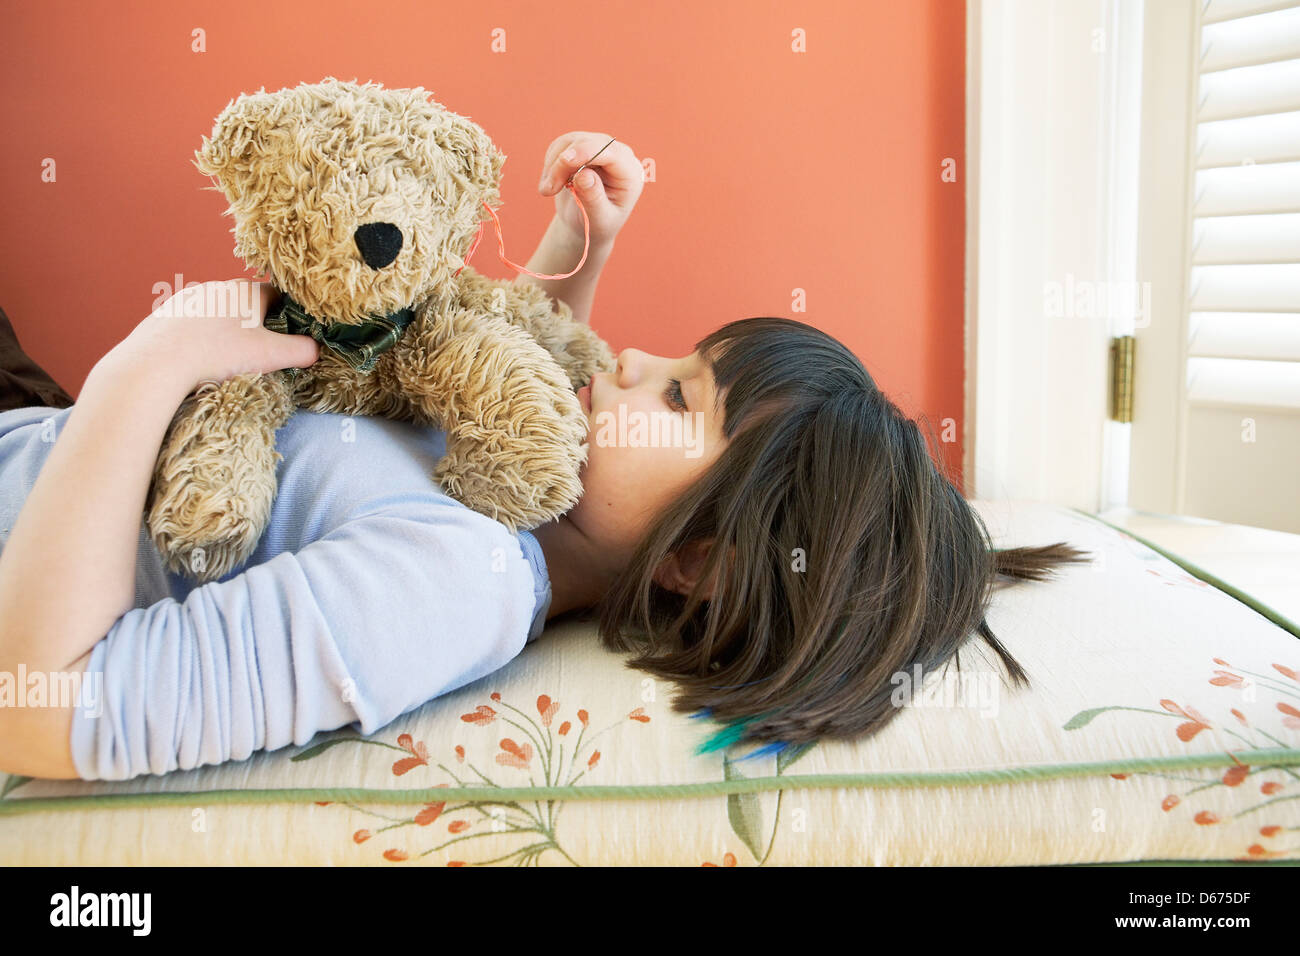 7 year old mending teddy bear - Stock Image